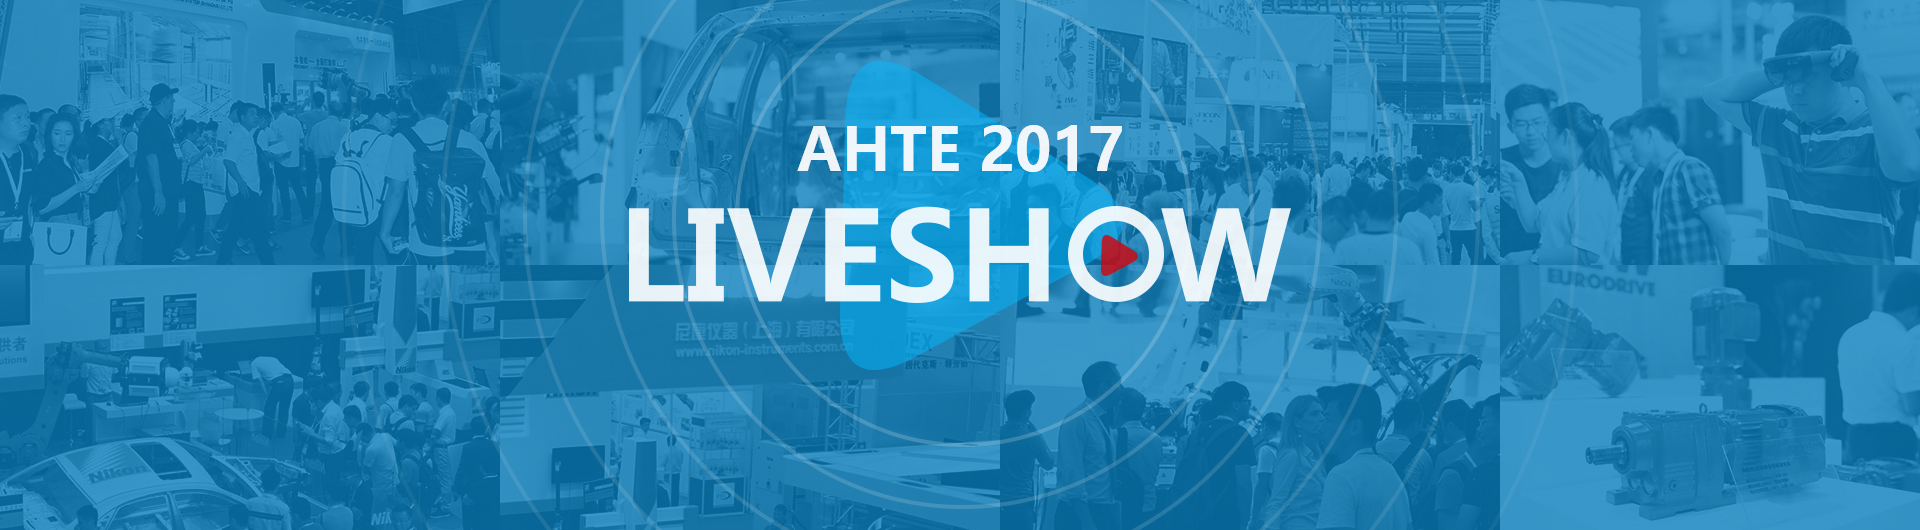 2017 AHTE live show